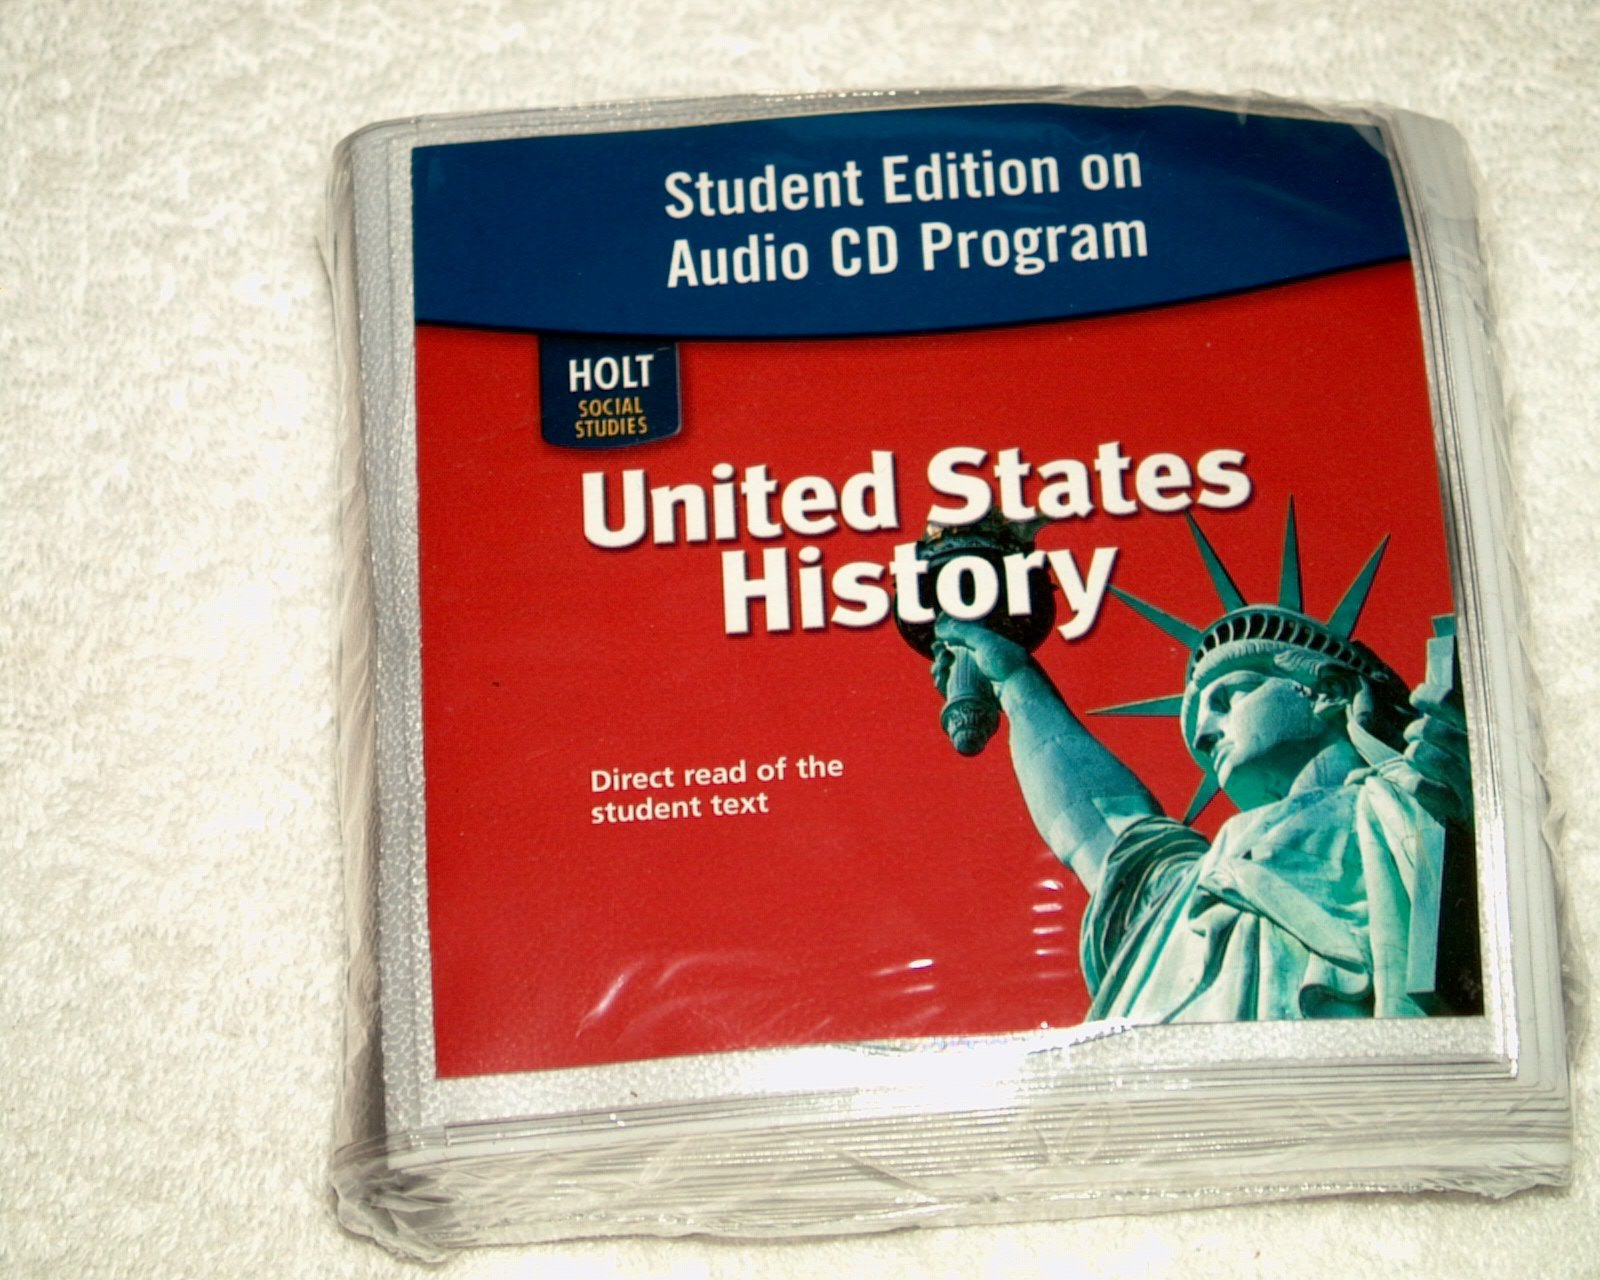 United States History: Student Edition on Audio CD Program